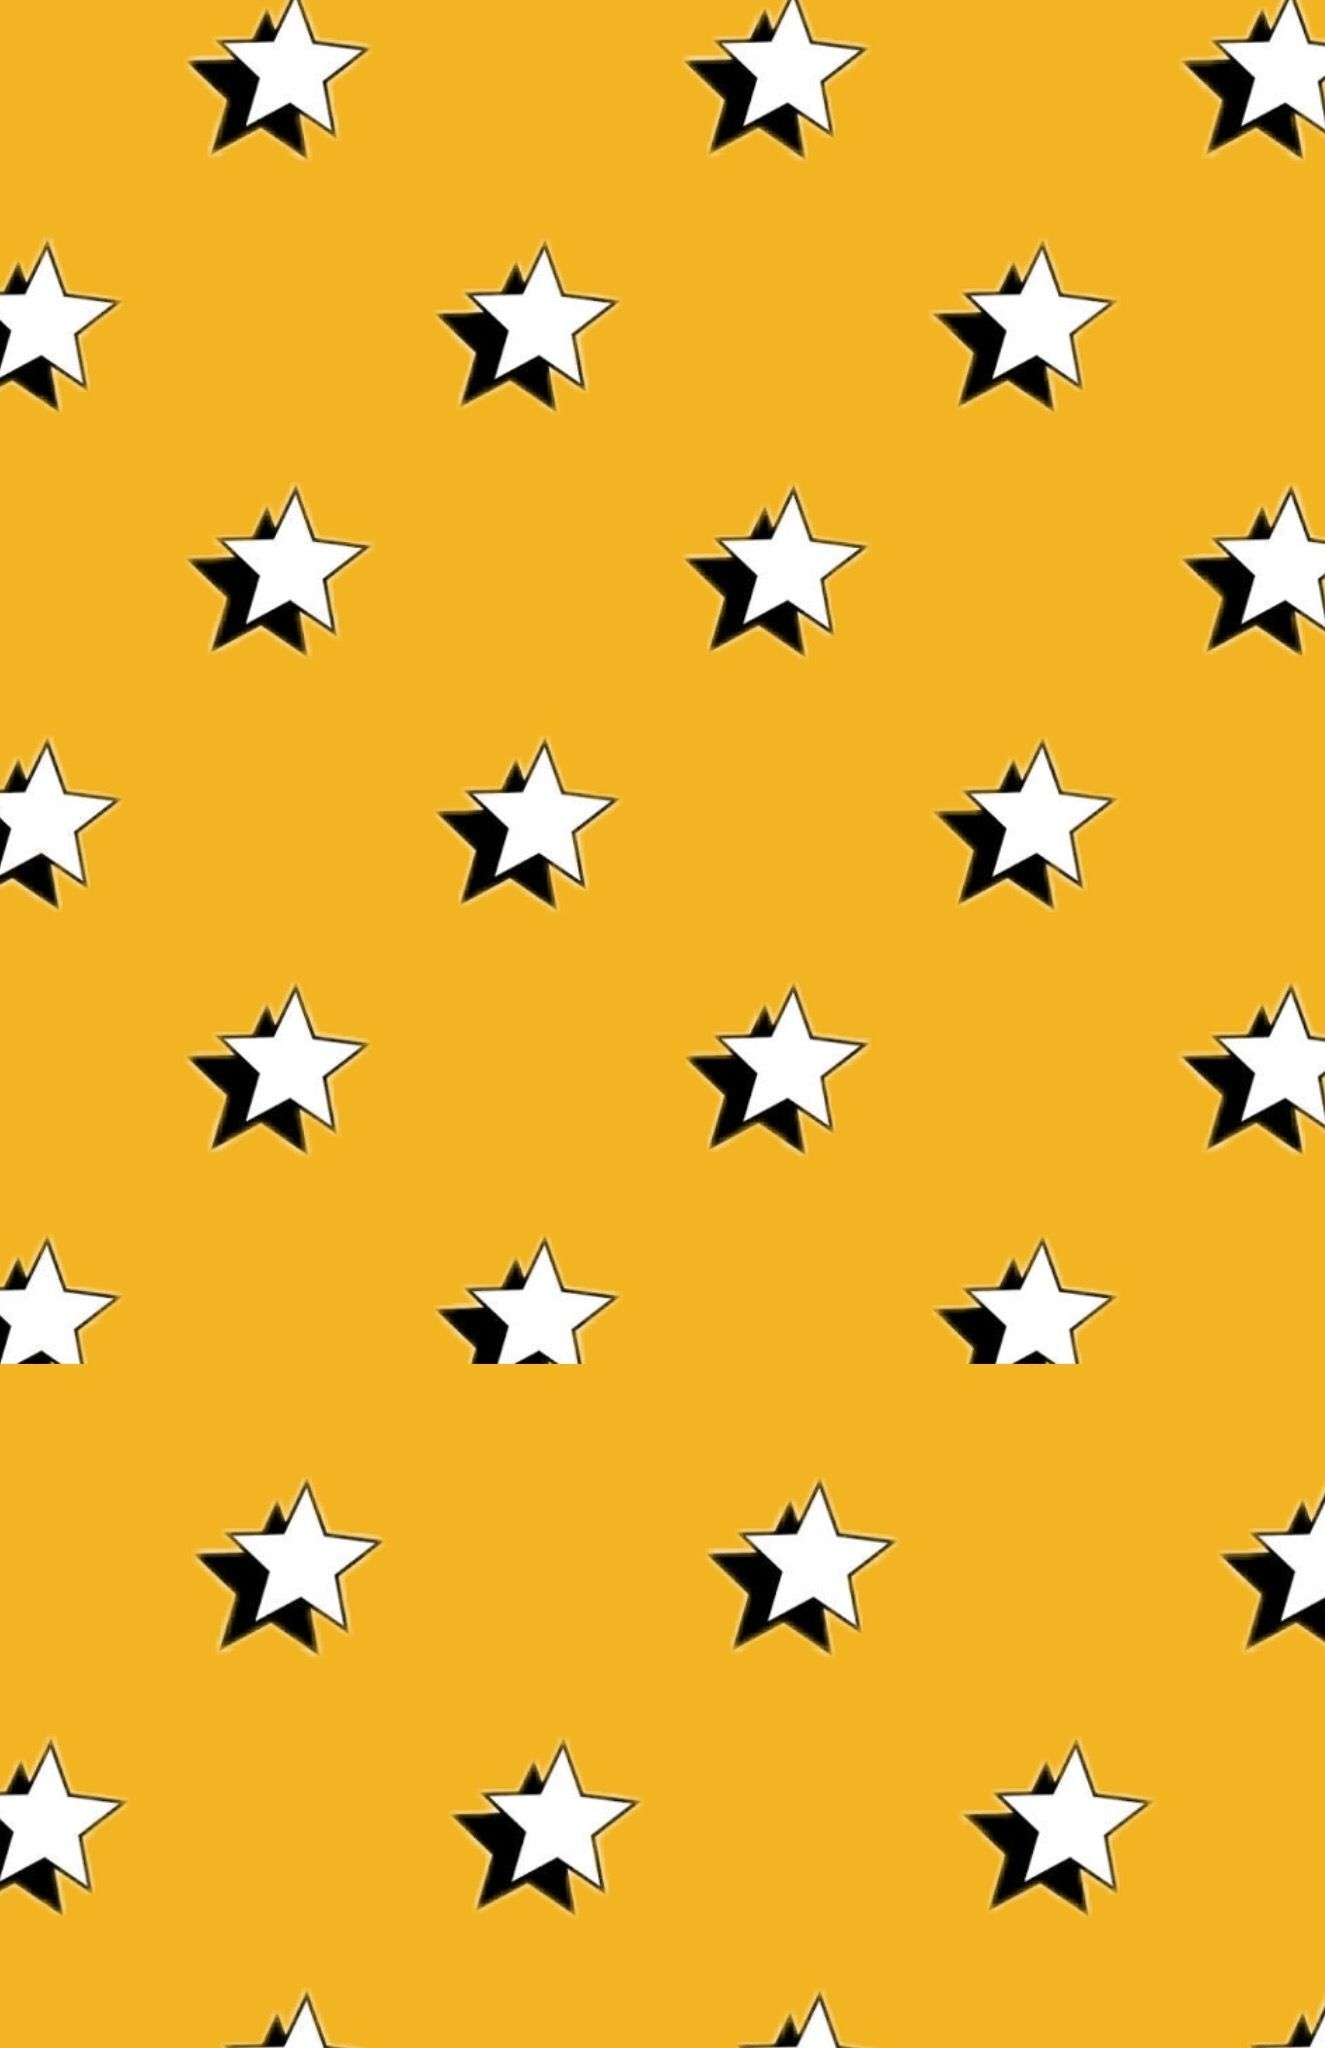 Pin By Liz Bright On Fav Wallpapers In 2020 Star Wallpaper Unique Wallpaper Cute Patterns Wallpaper